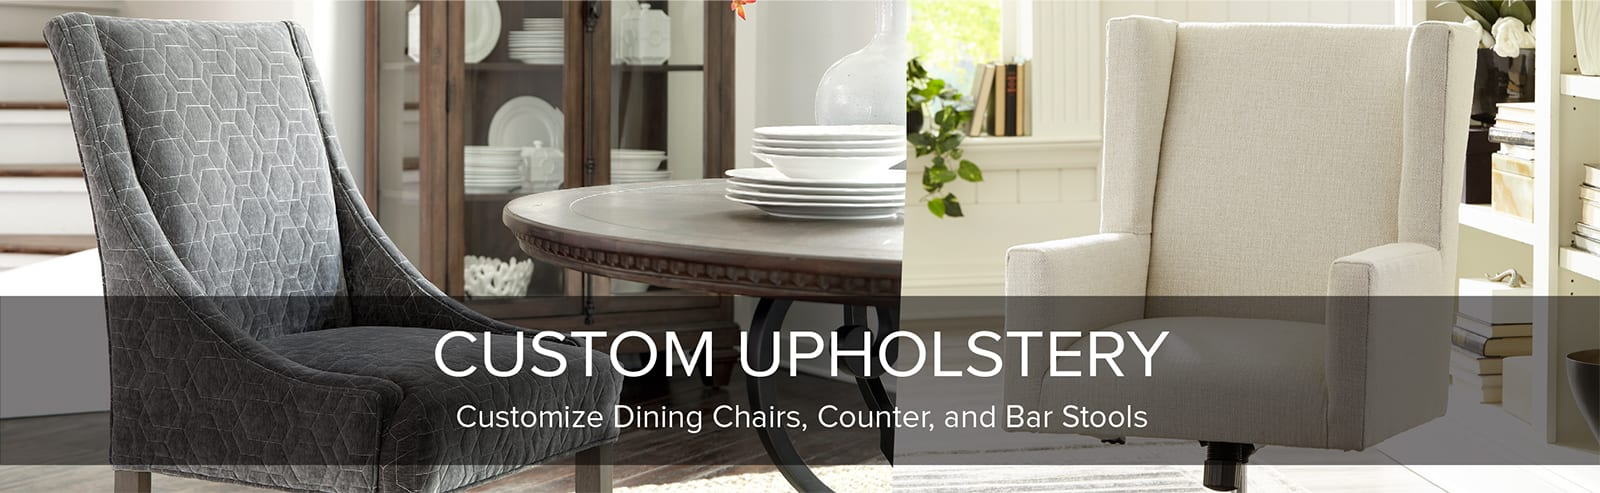 Customize Upholstery